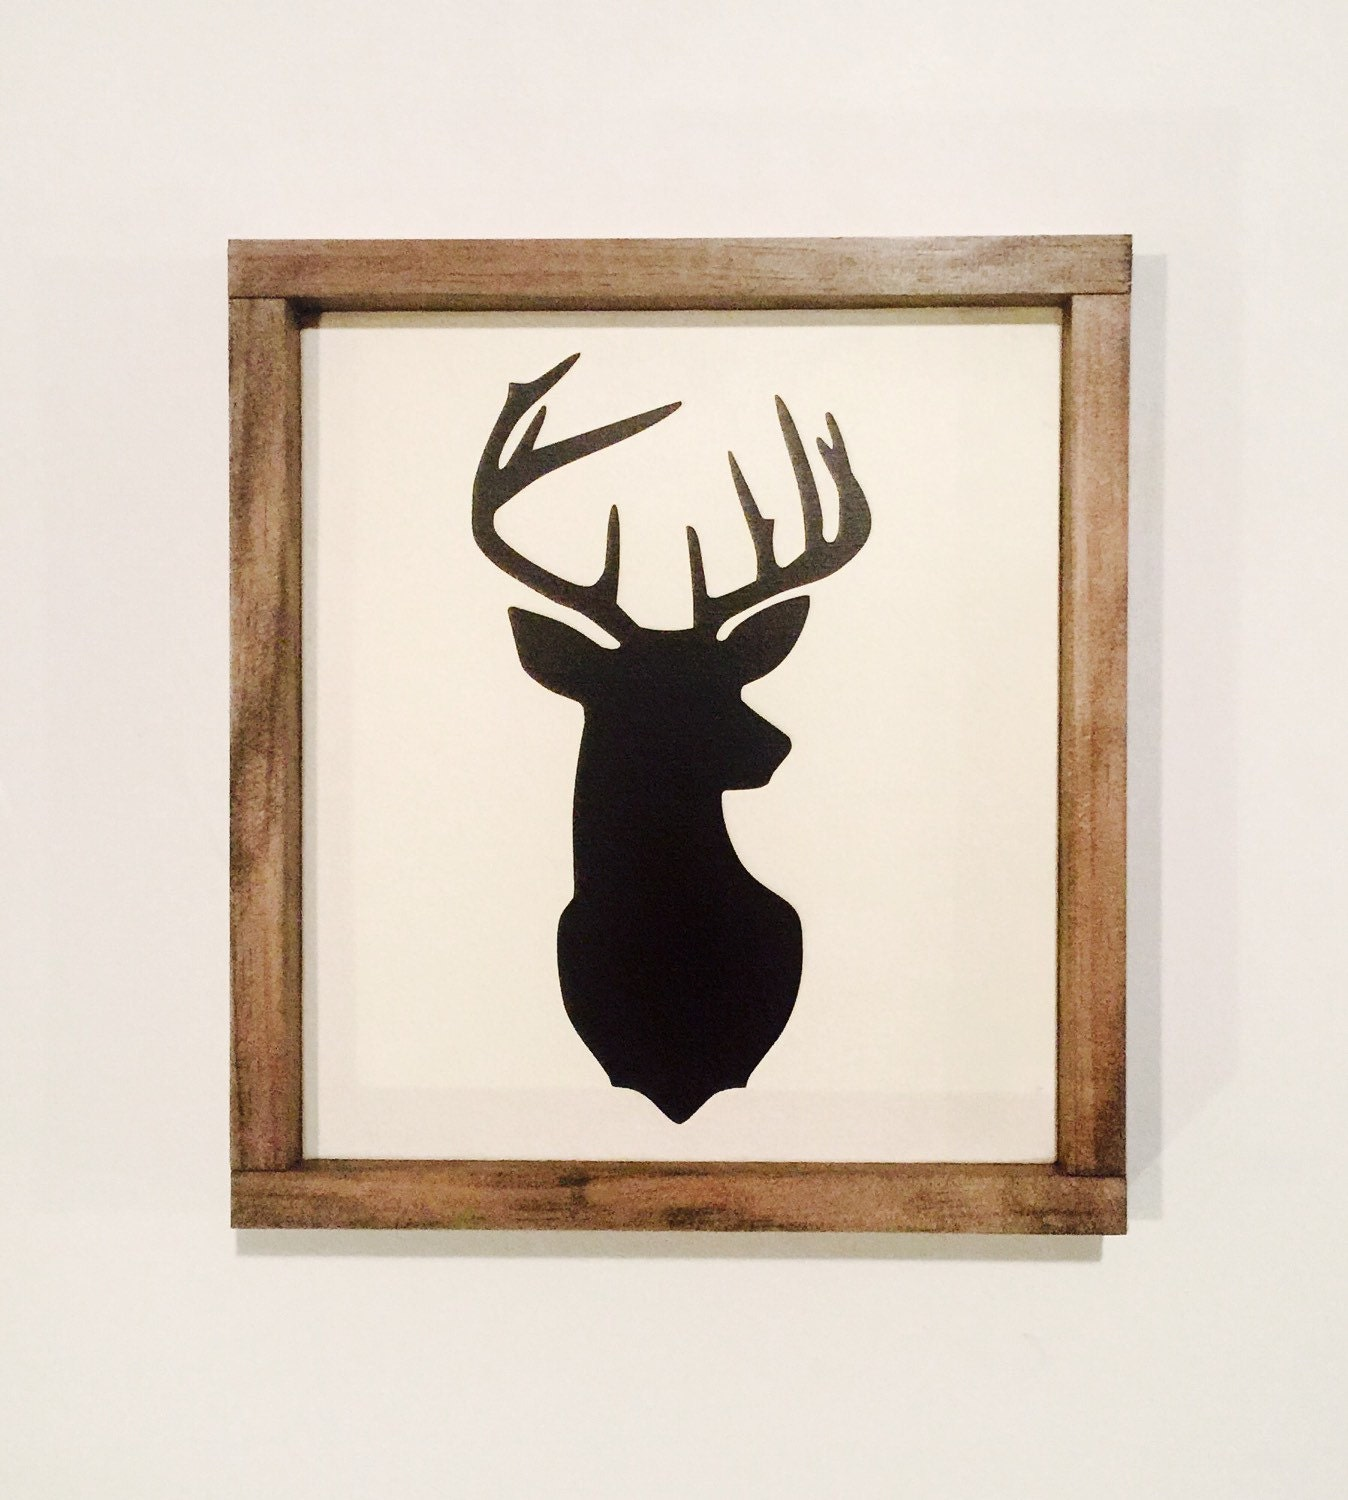 Wall Art Of Deer : Framed deer sign wood wall art